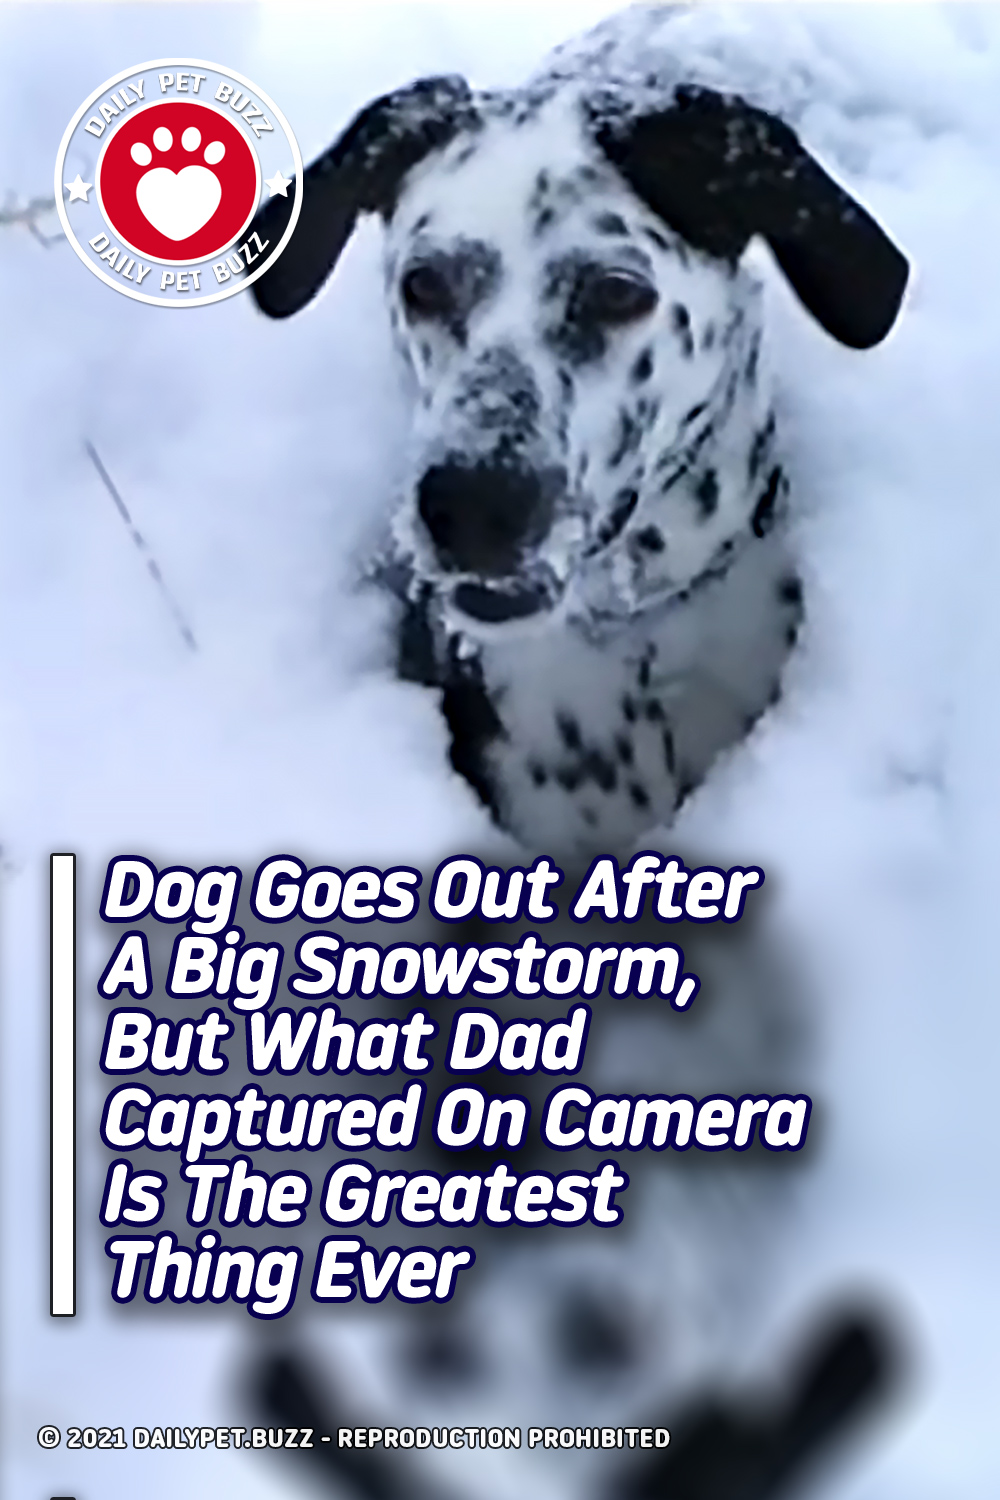 Dog Goes Out After A Big Snowstorm, But What Dad Captured On Camera Is The Greatest Thing Ever